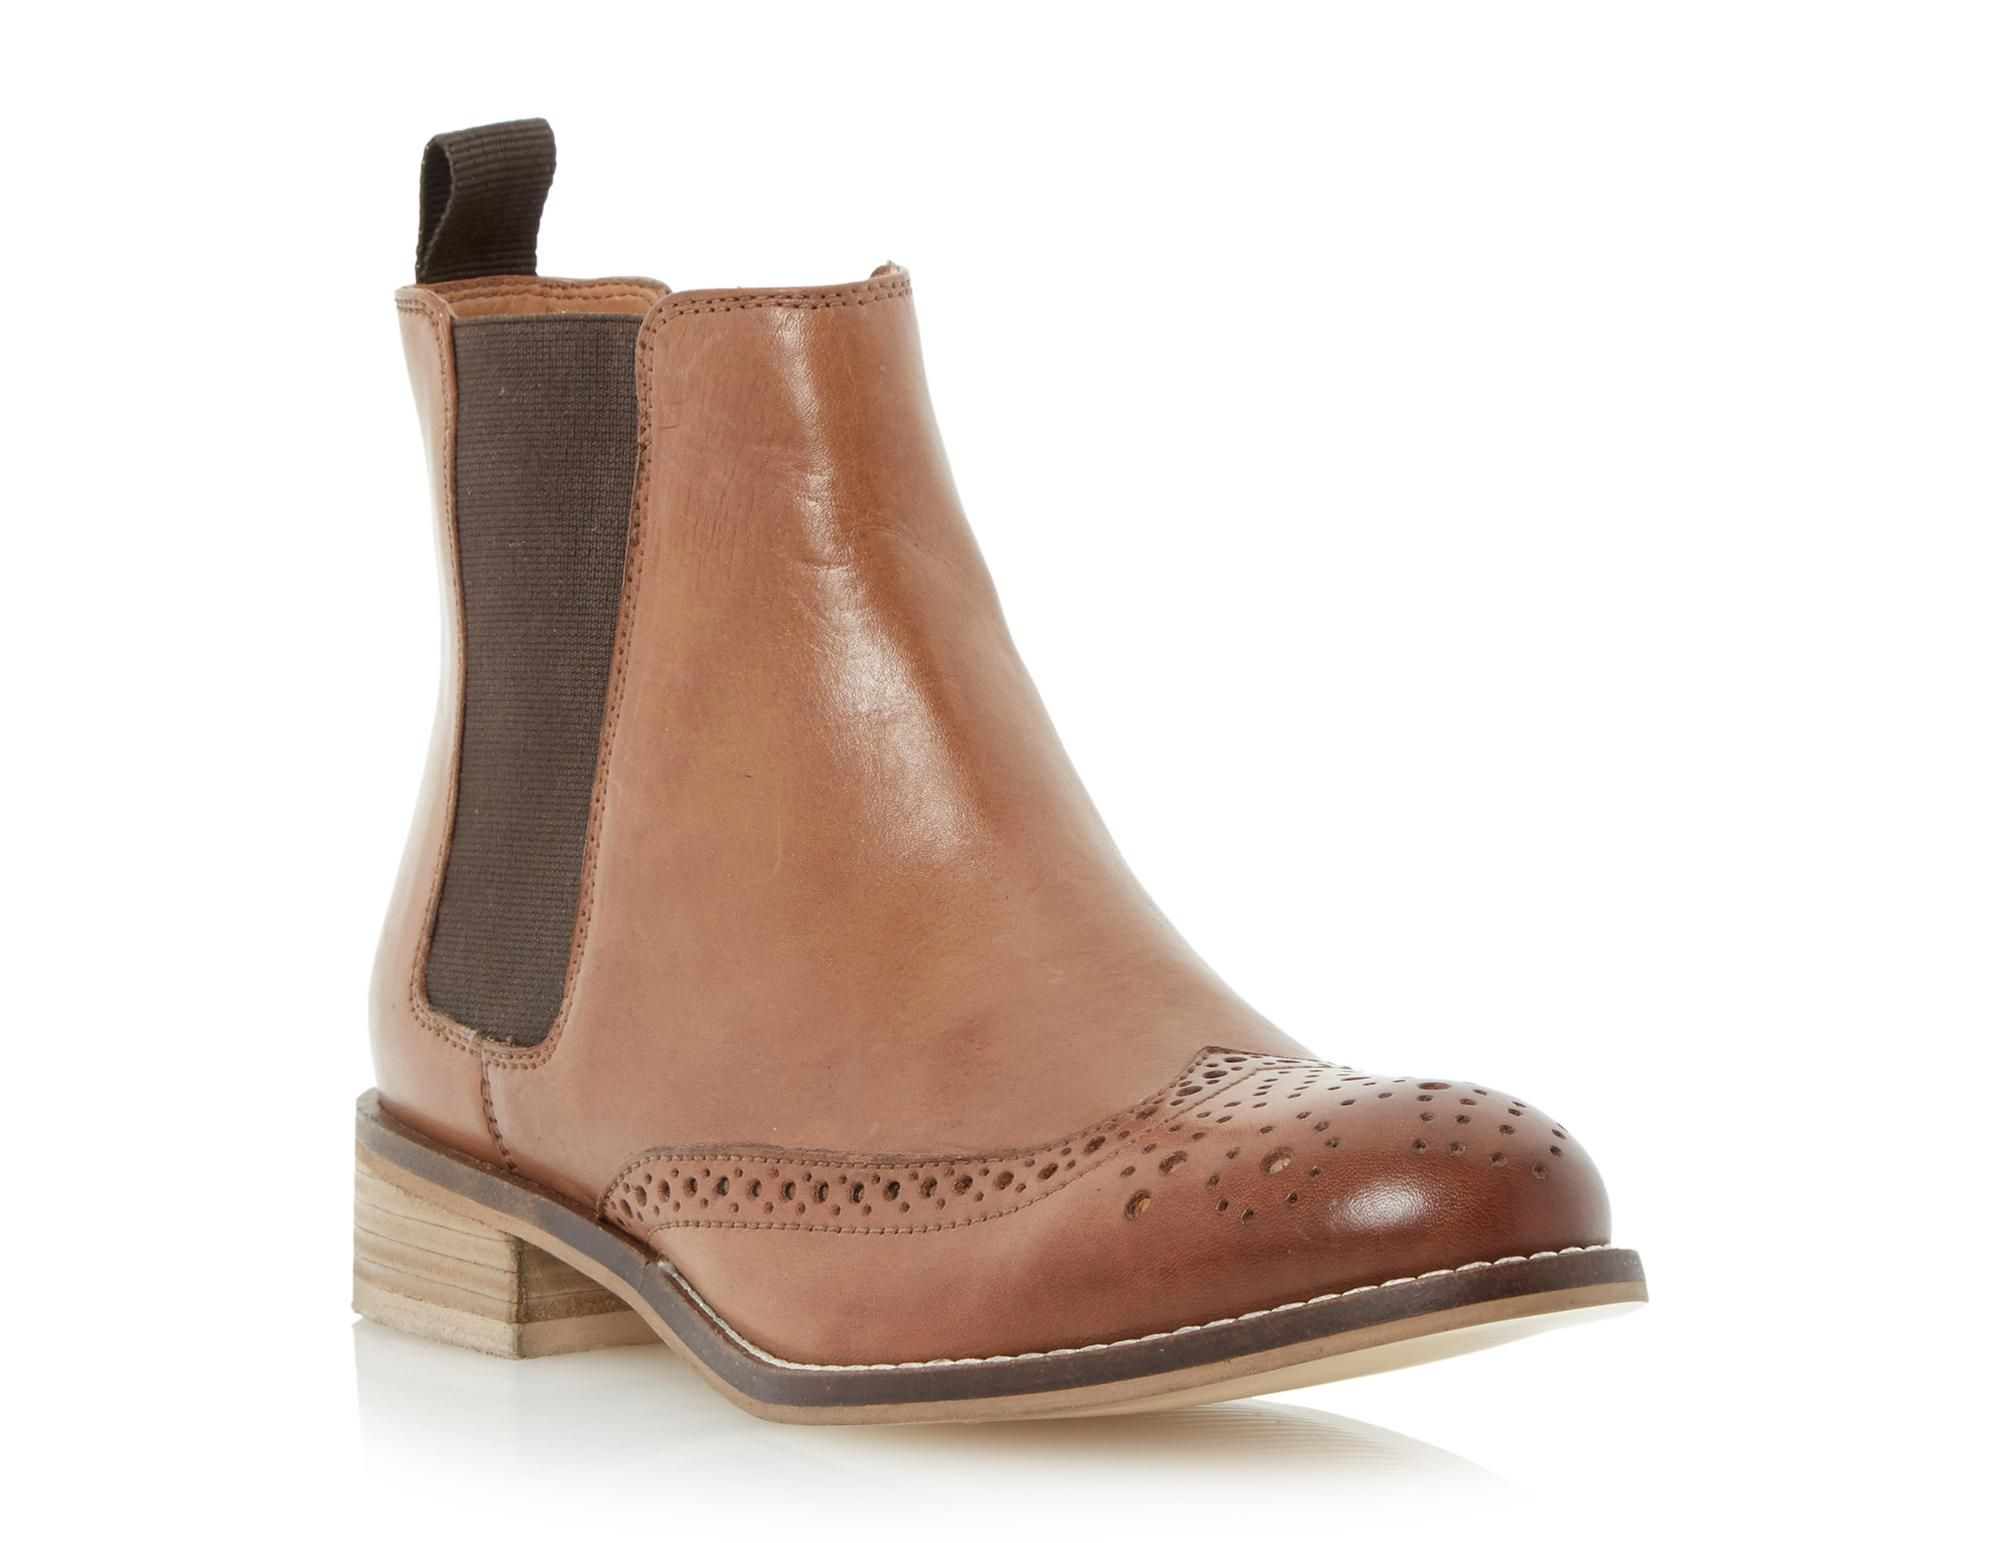 Dune London Women's Quentin Chelsea Boot Tan Leather Size 40 M, Brown